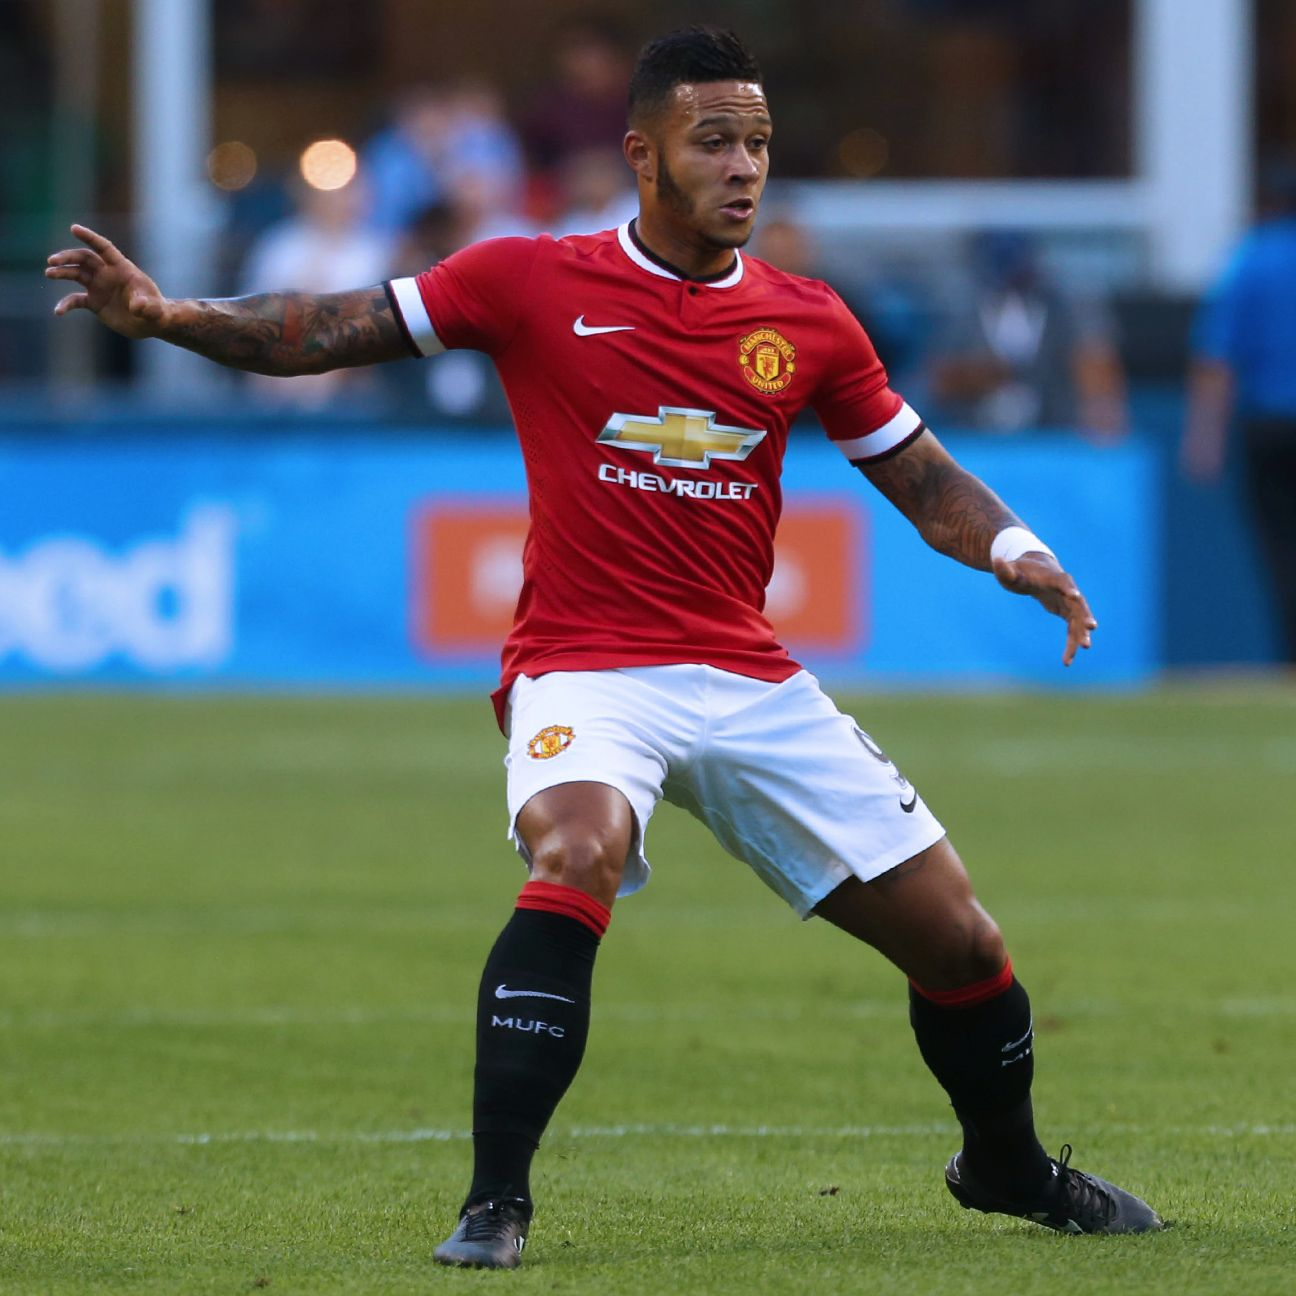 If Memphis Depay could regain the form he showed at the start of the season, he could help Man United make up for Wayne Rooney's absence.